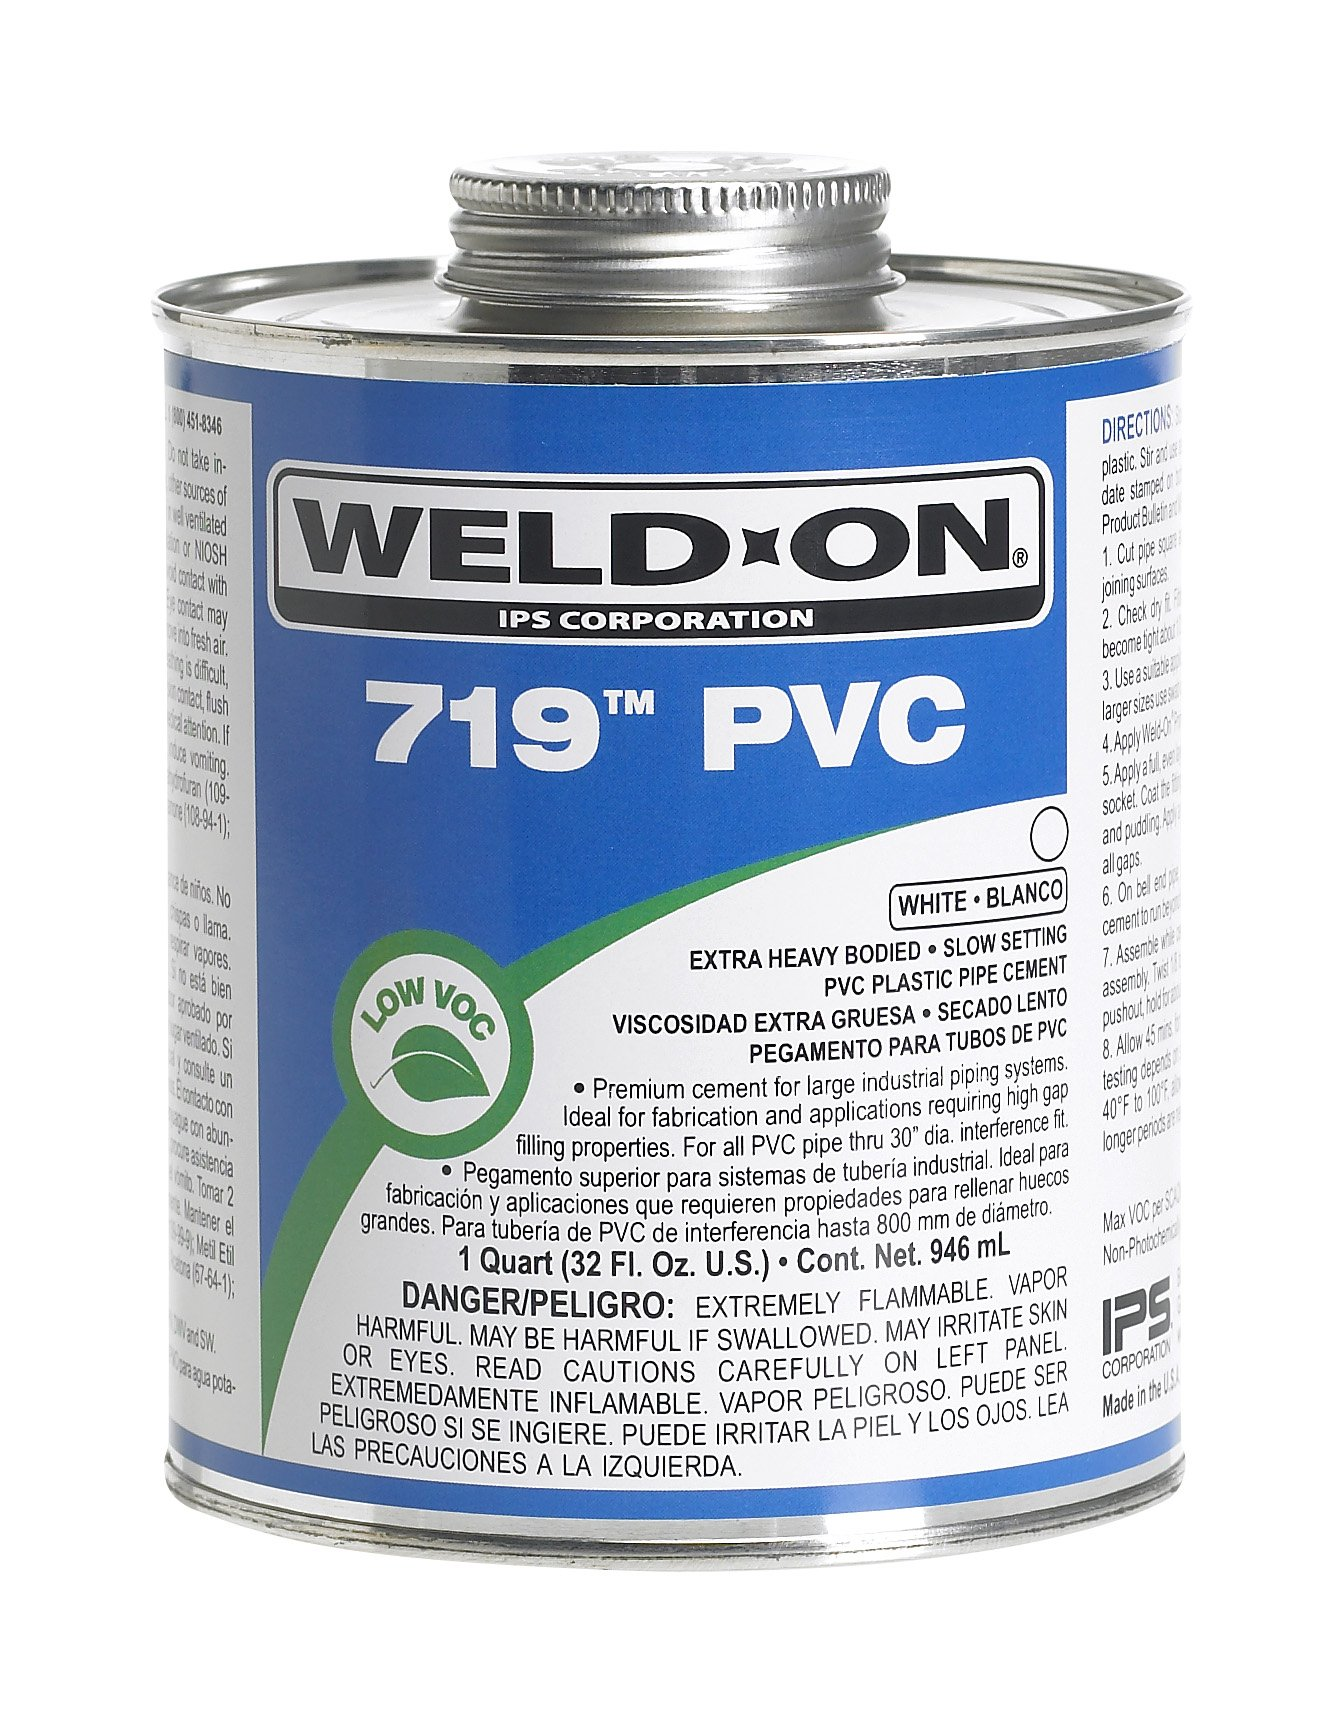 Weld-On 10159 White 719 Extra Heavy-Bodied PVC Professional Industrial-Grade Cement, Slow-Setting, Low-VOC, 1 pint Triple Tight Paint Can